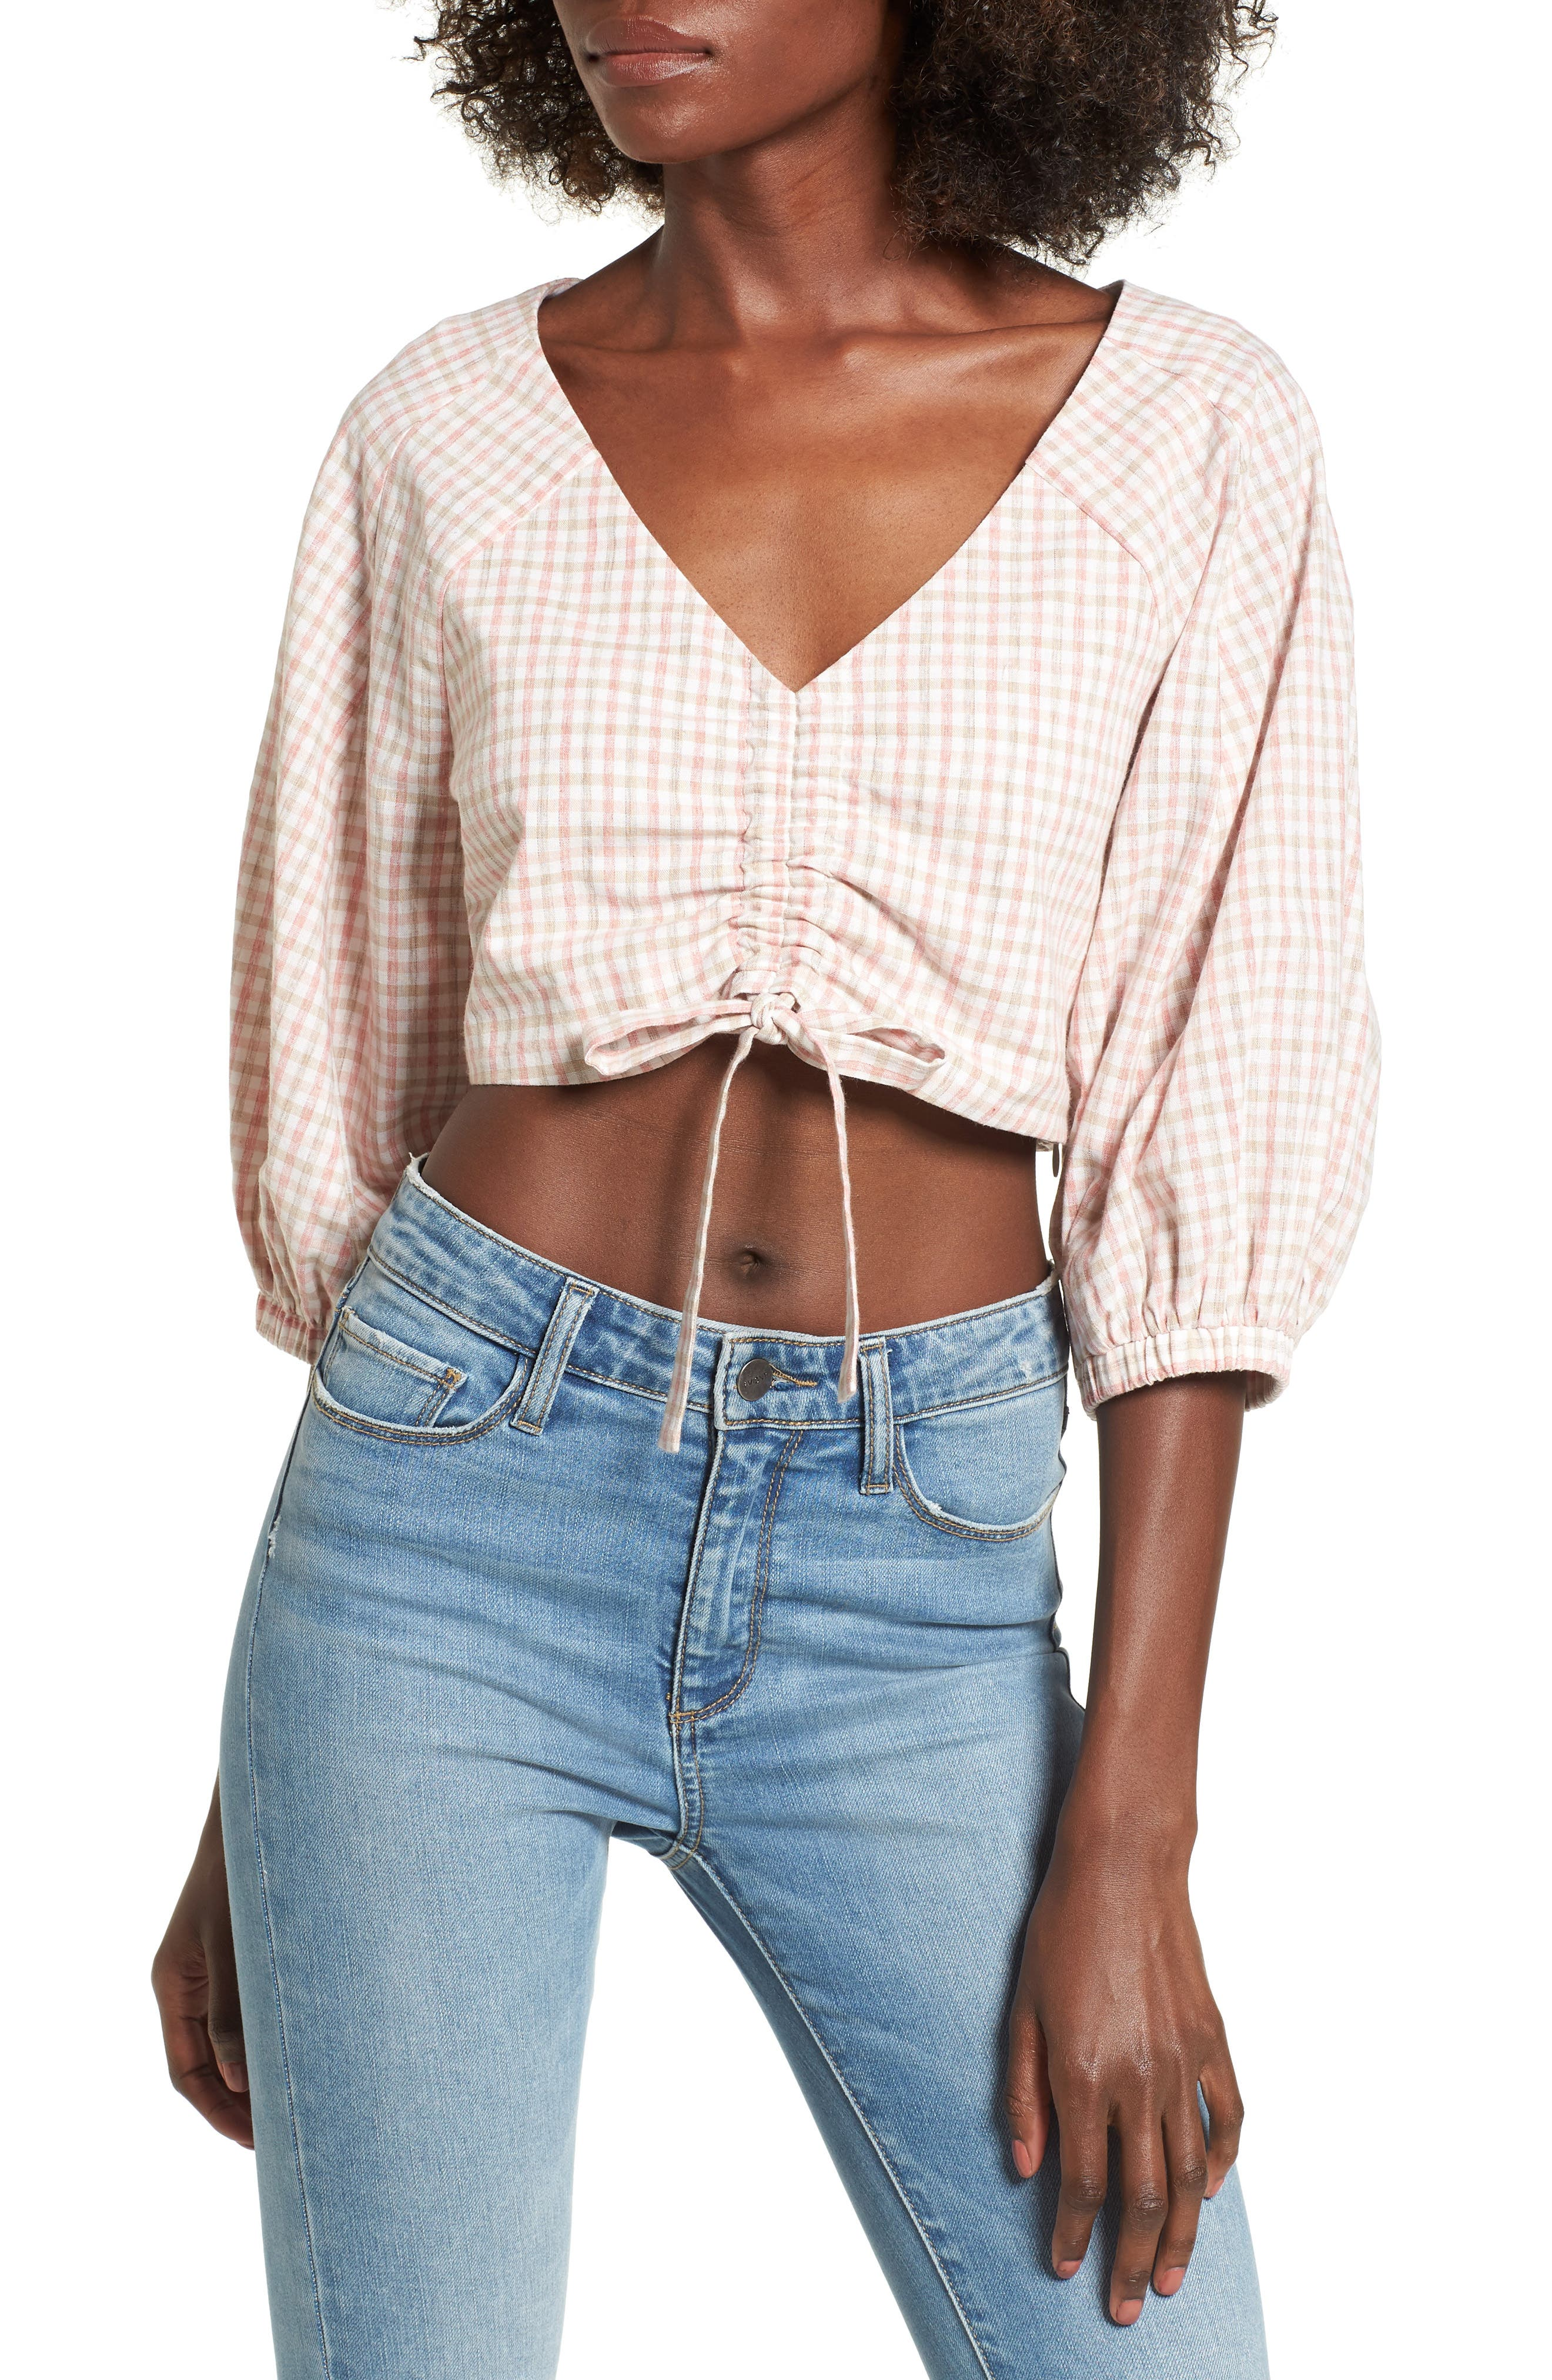 Main Image - Chriselle x J.O.A. Ruched Front Crop Top